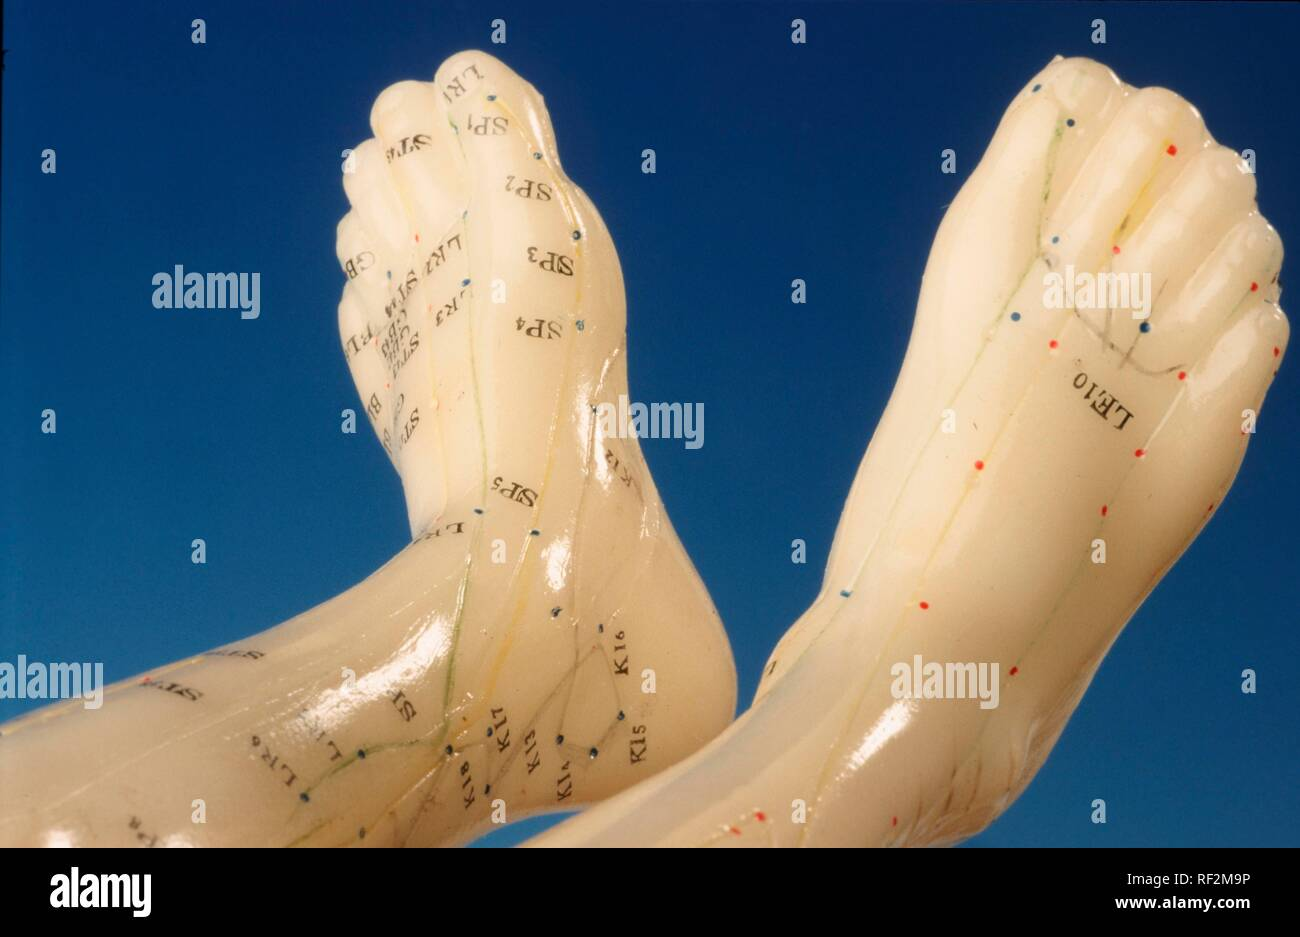 Acupuncture Model Points Stock Photos & Acupuncture Model Points